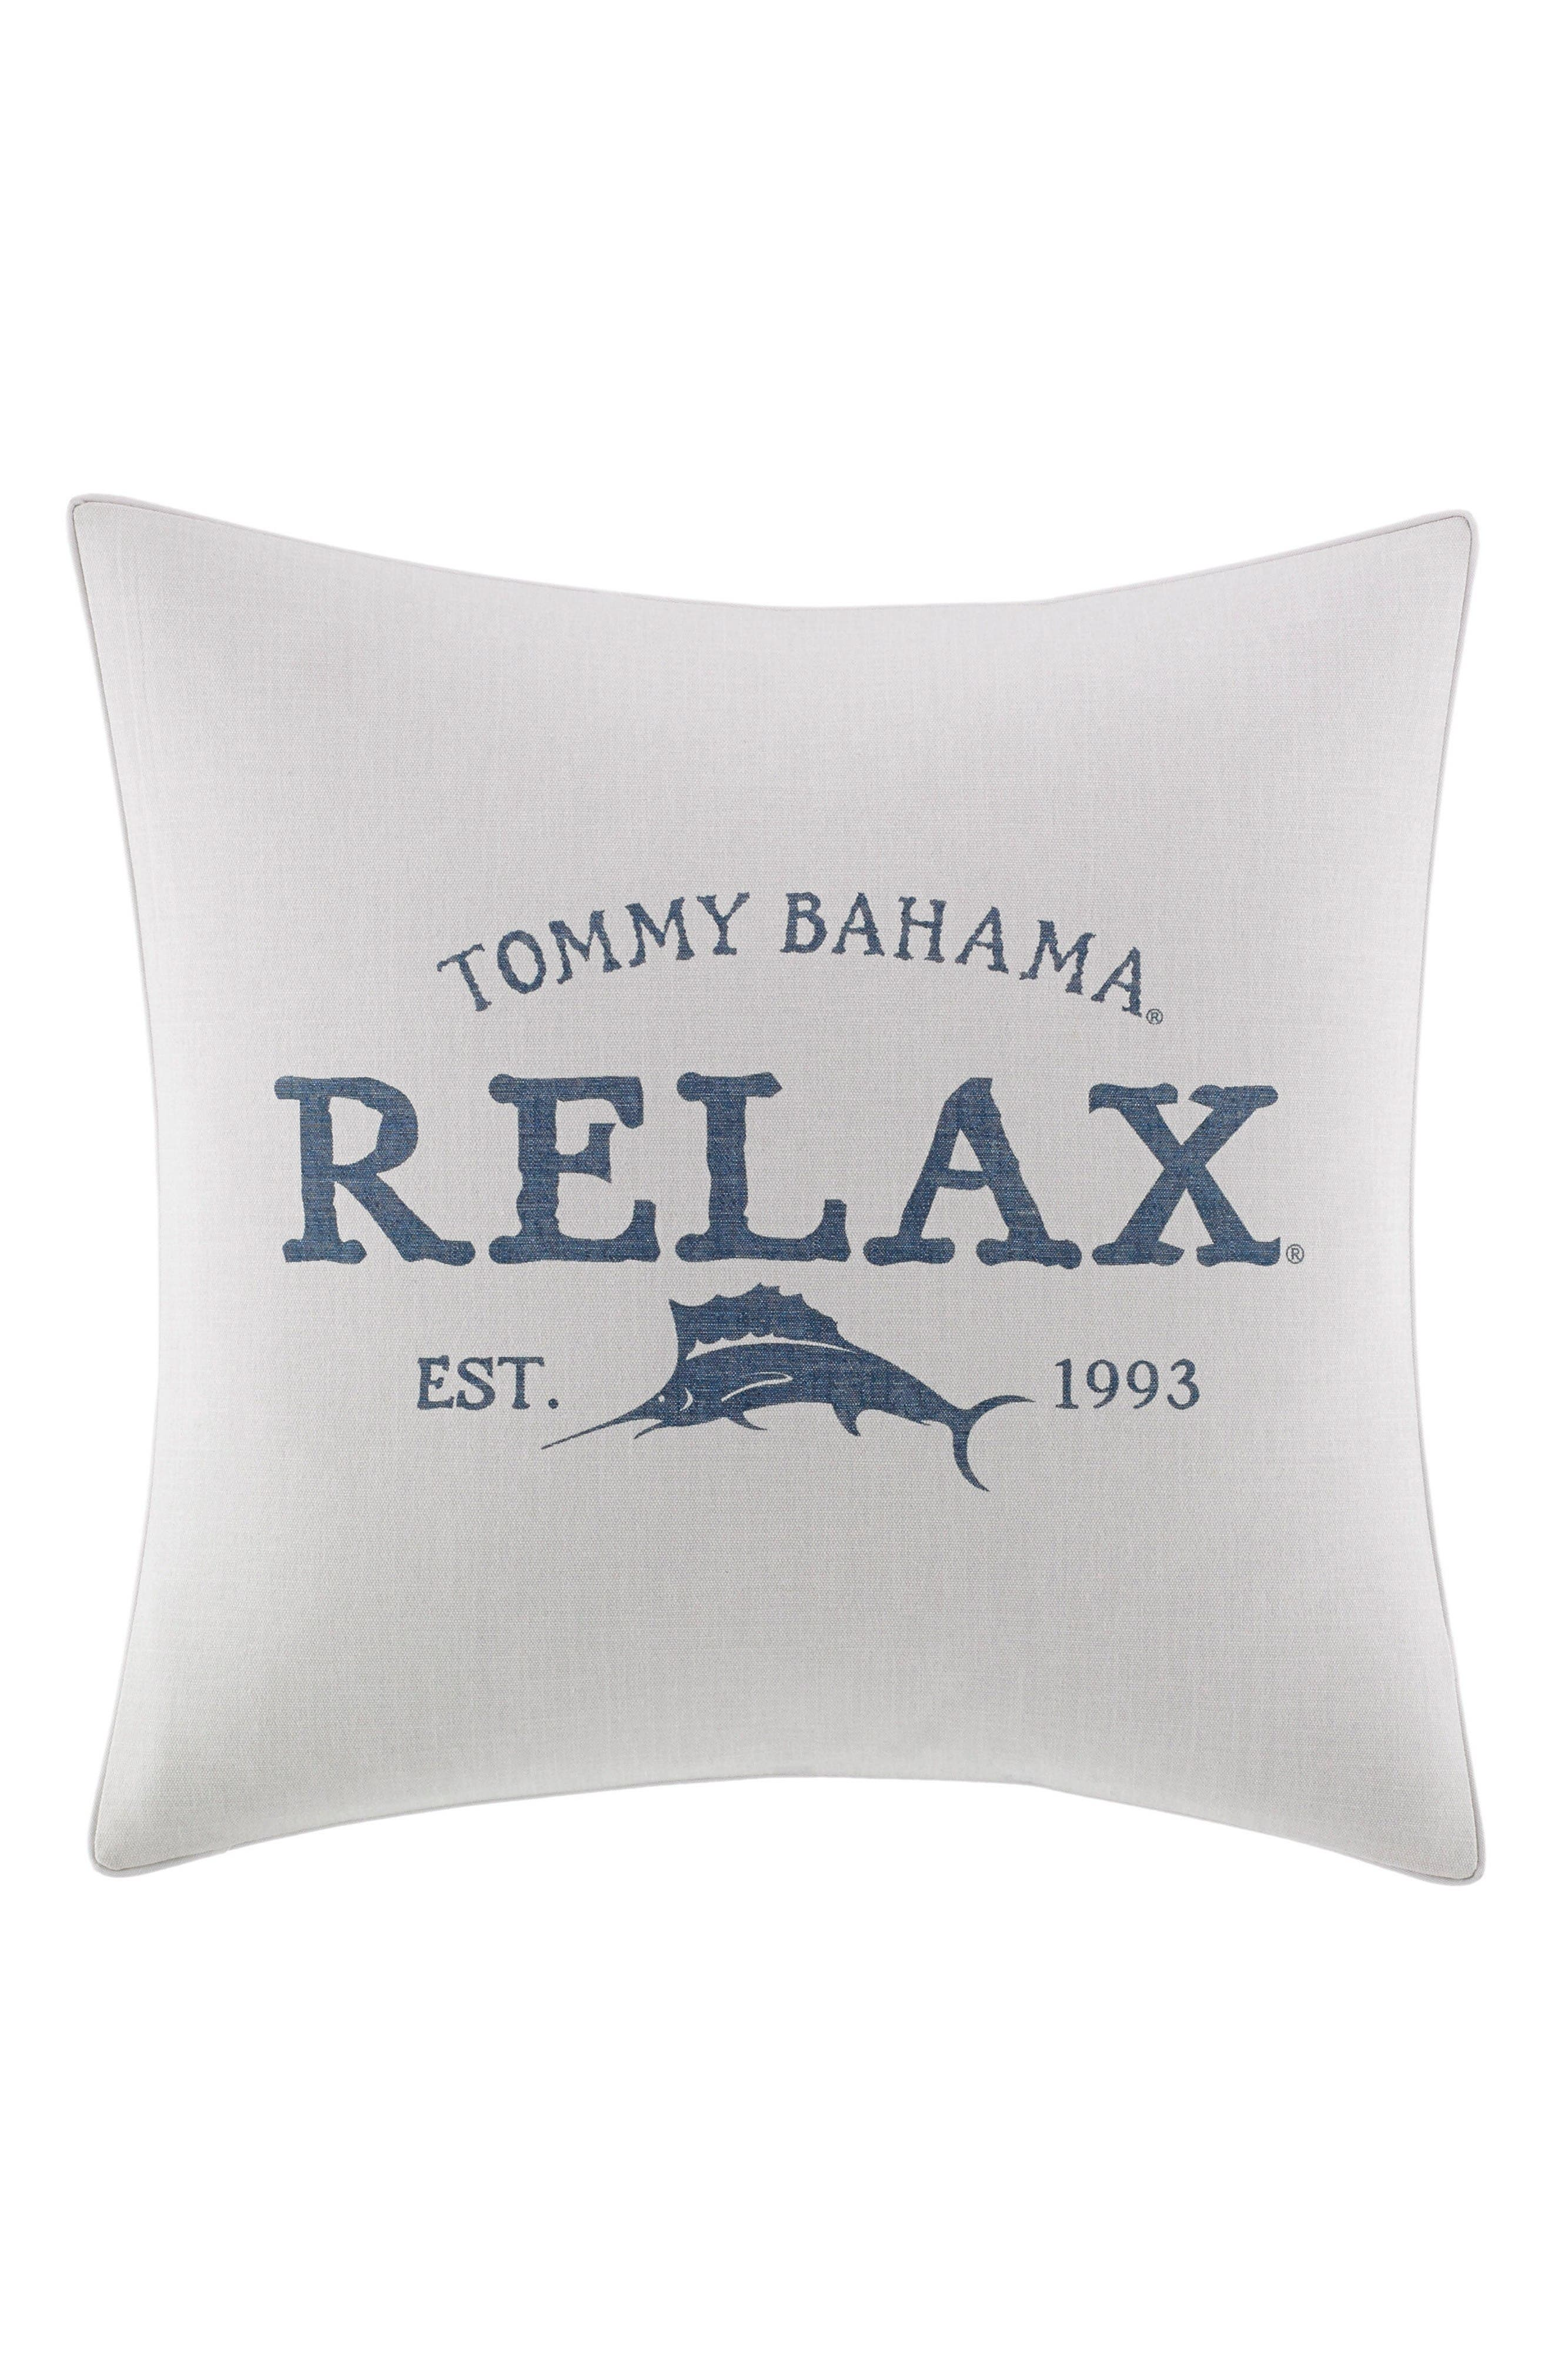 Tommy Bahama Relax Accent Pillow